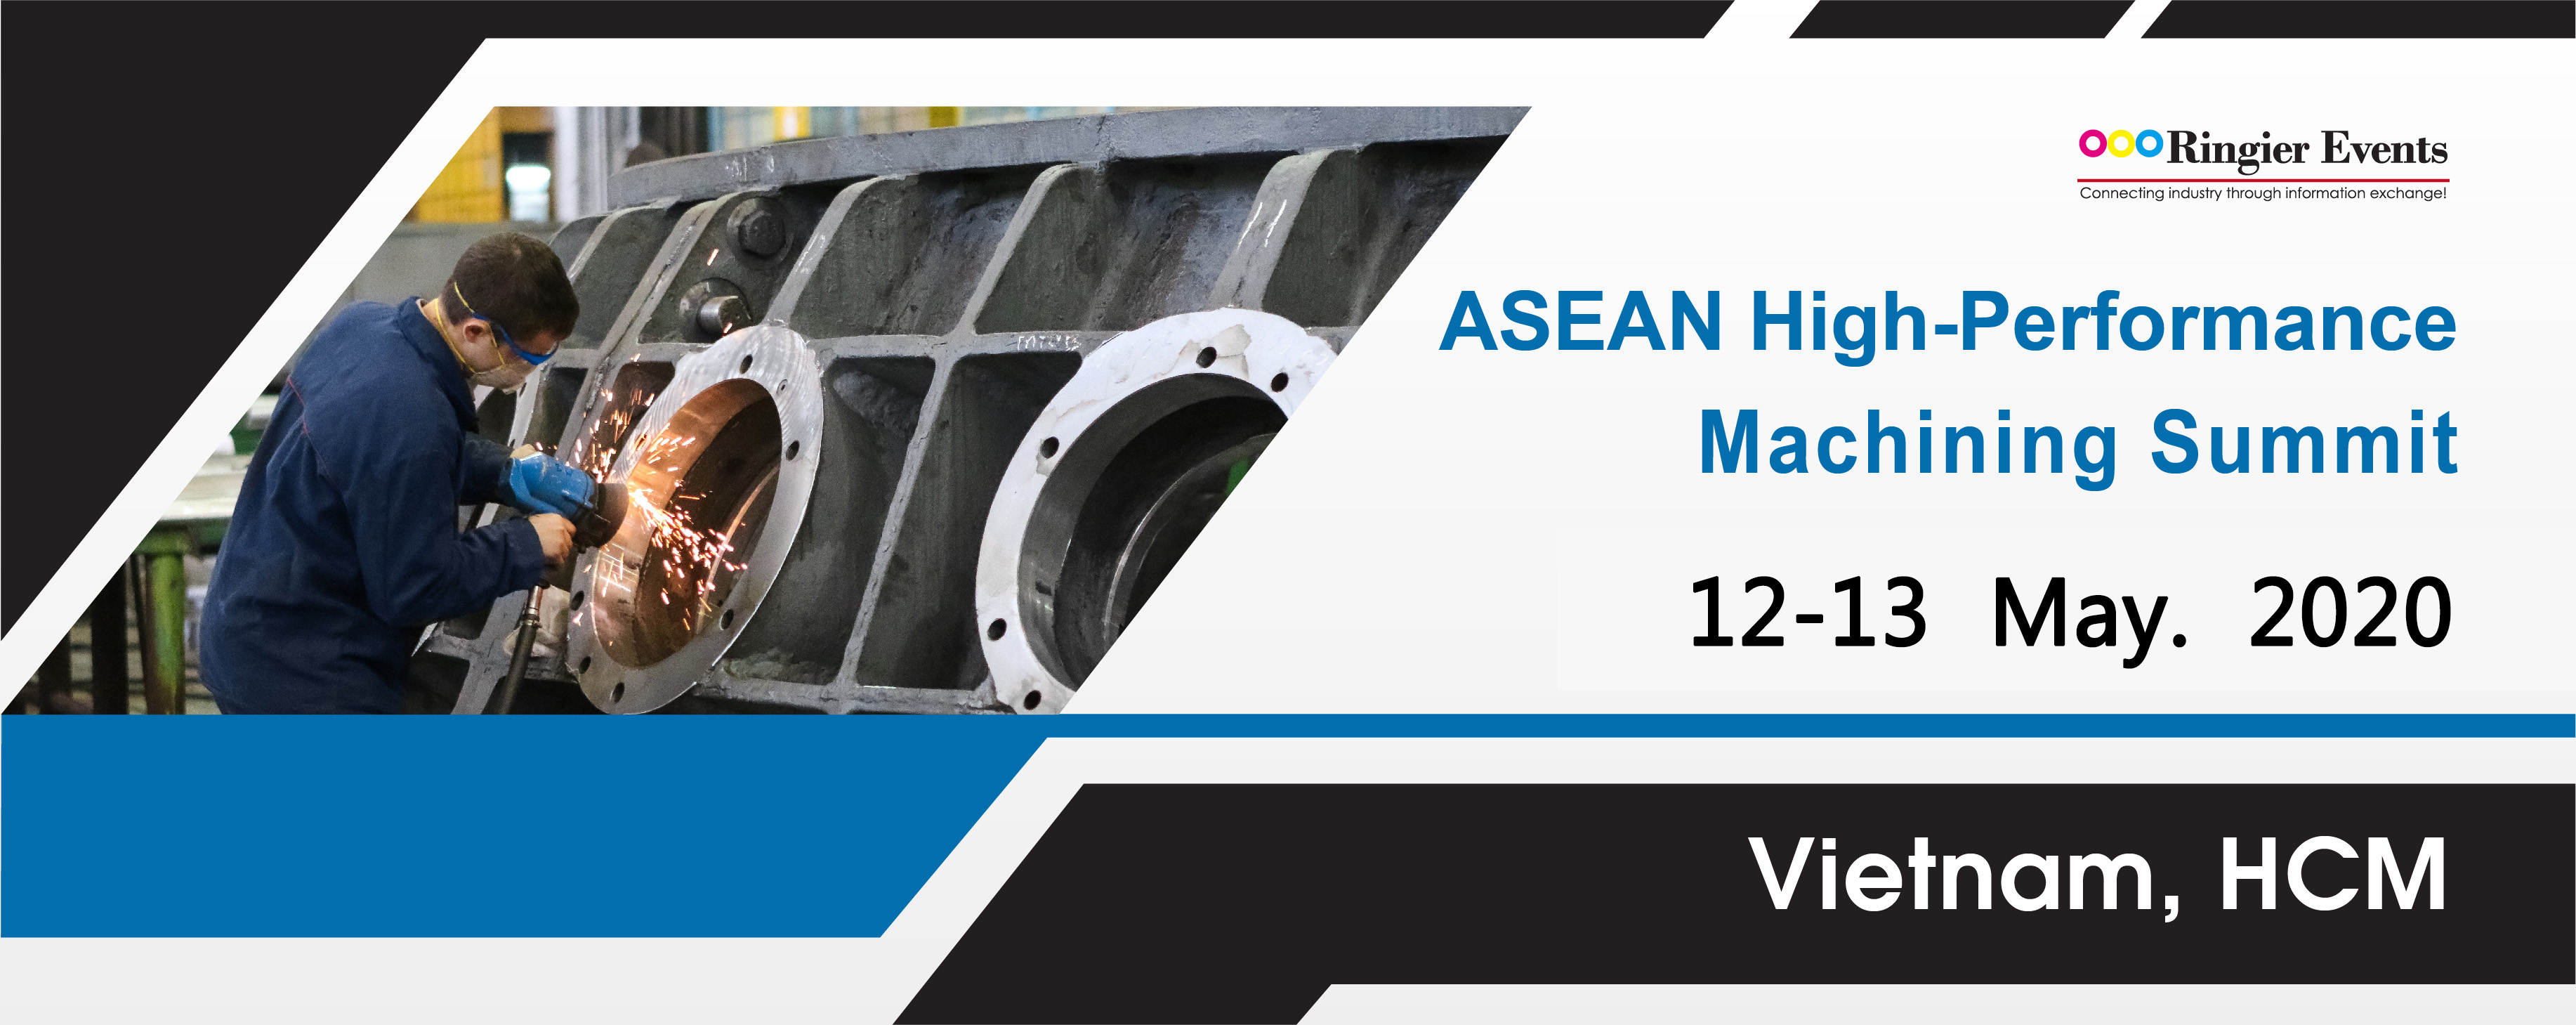 ASEAN High-Performance Machining Summit 2020— Autoparts, 3C, Home appliances